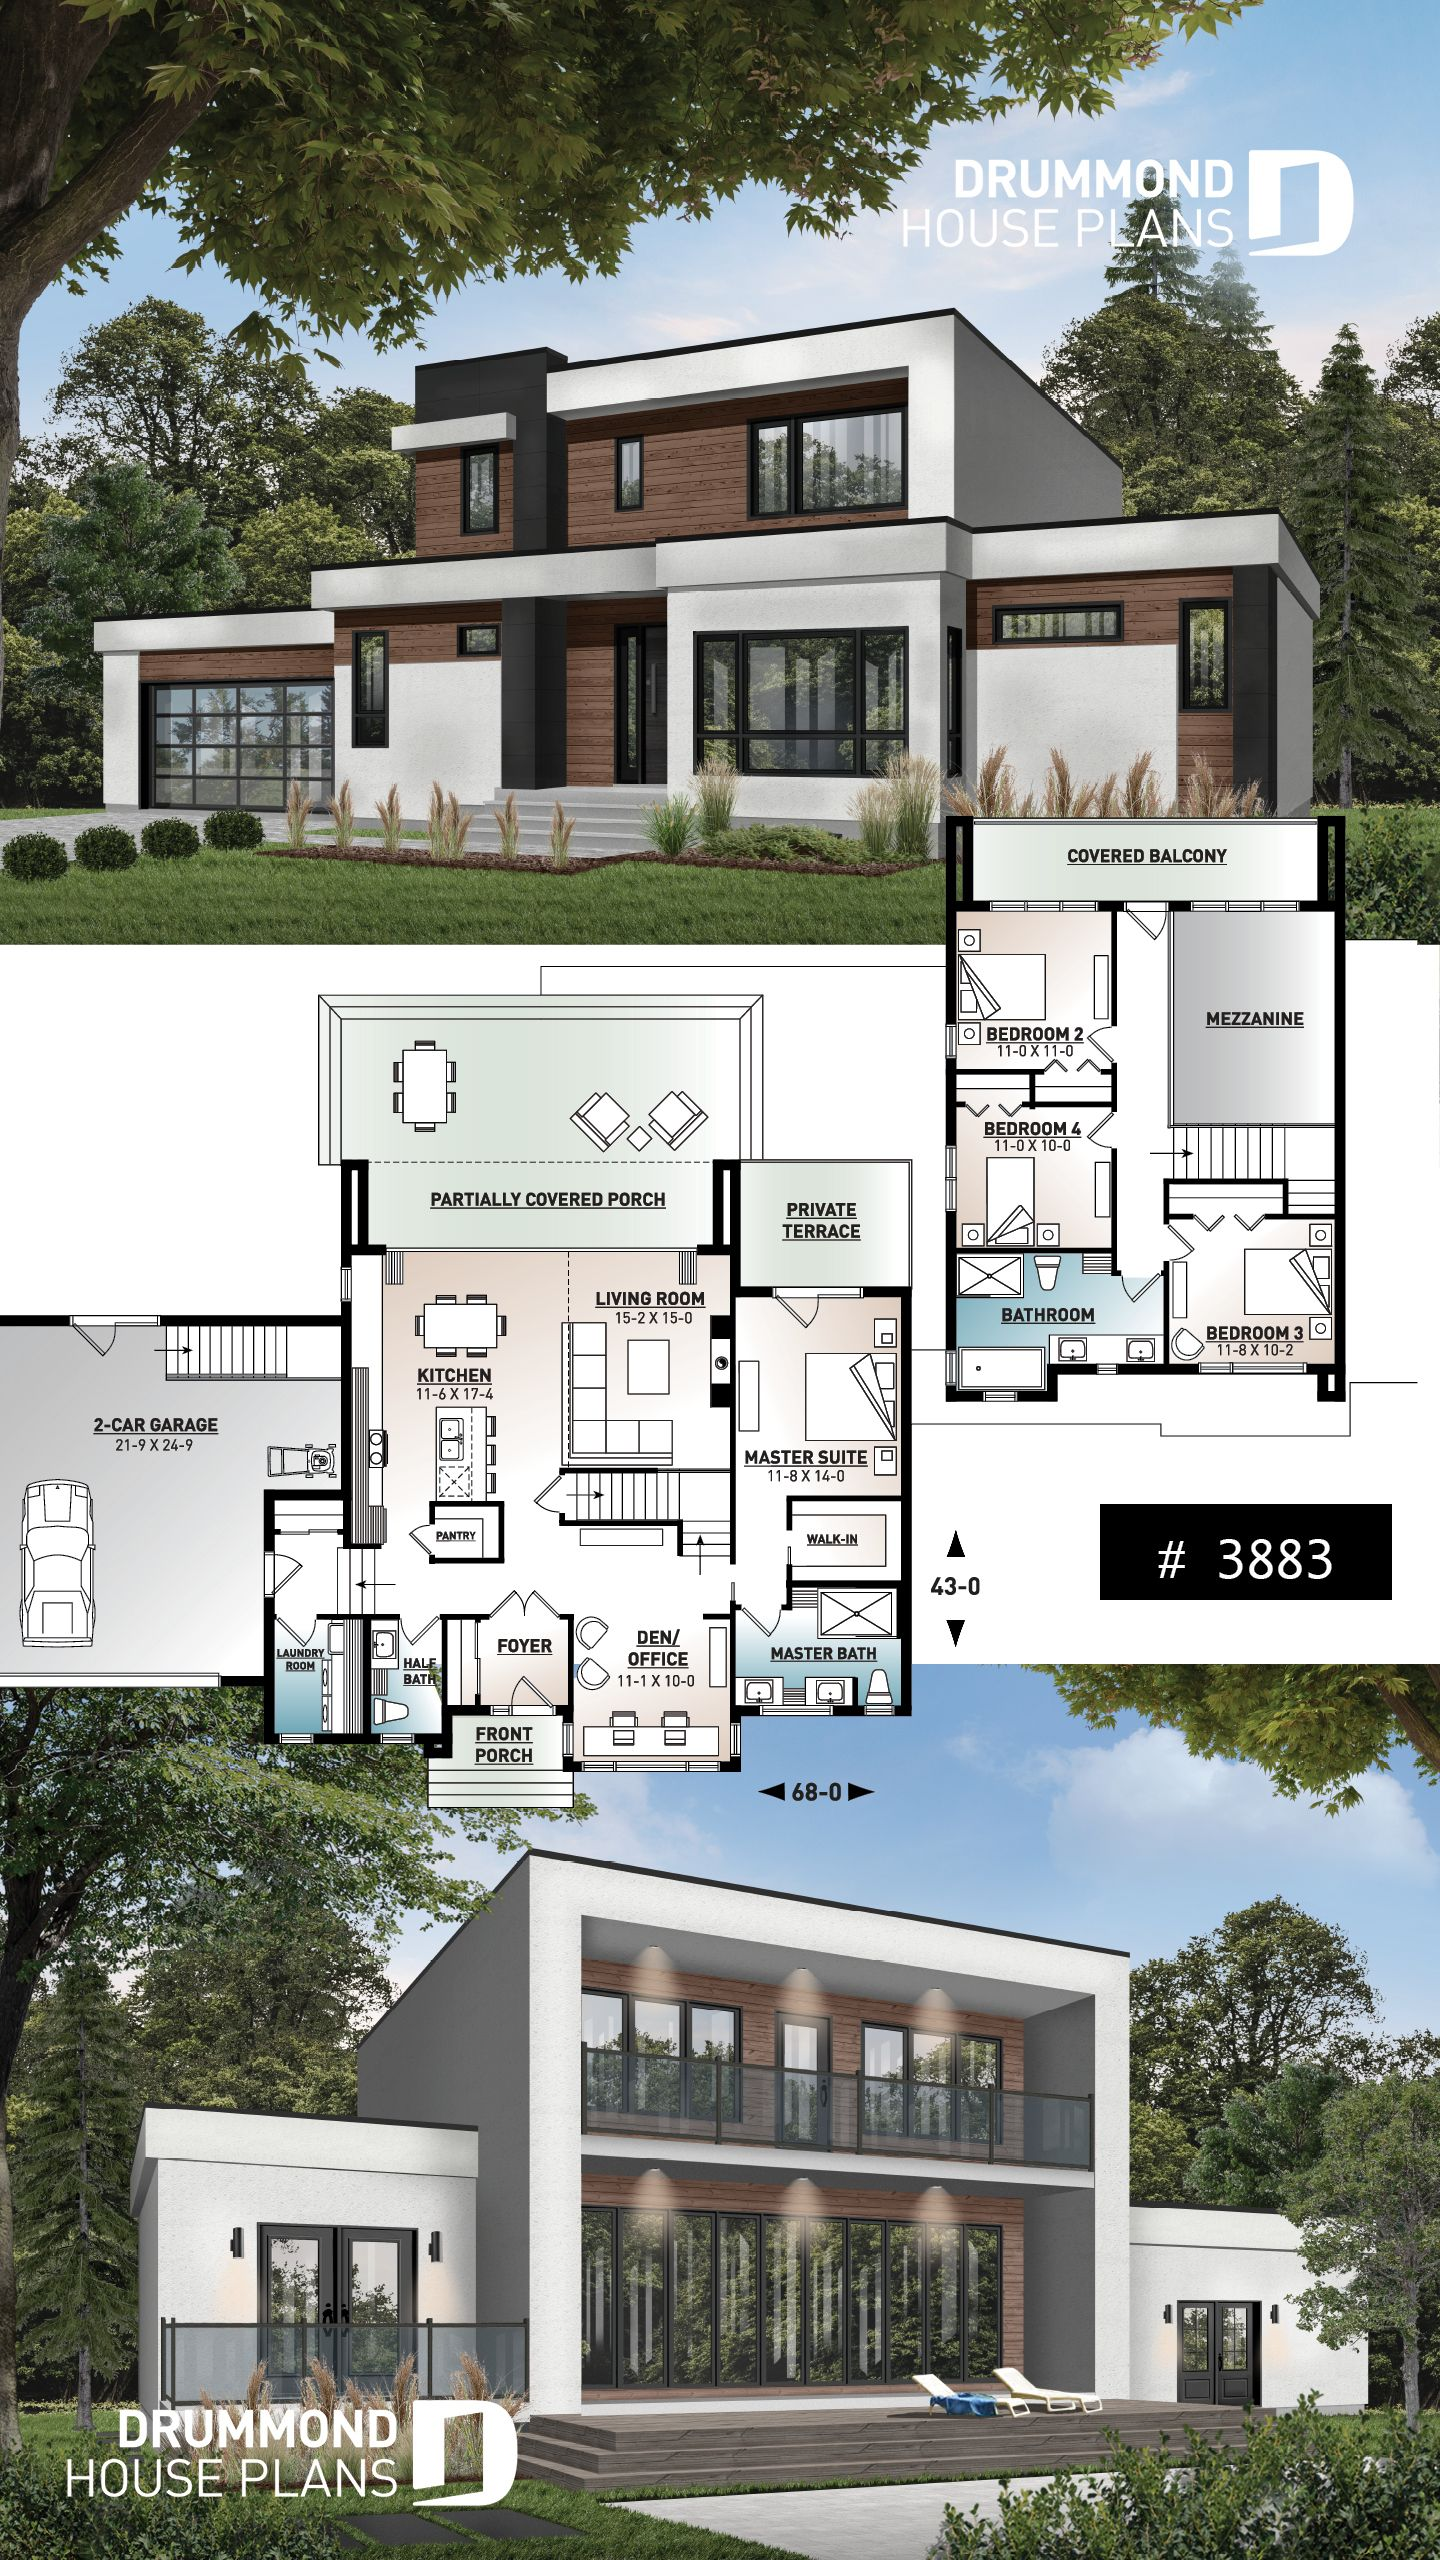 MODERN CUBIC HOME PLAN WITH MASTER SUITE ON MAIN FLOOR